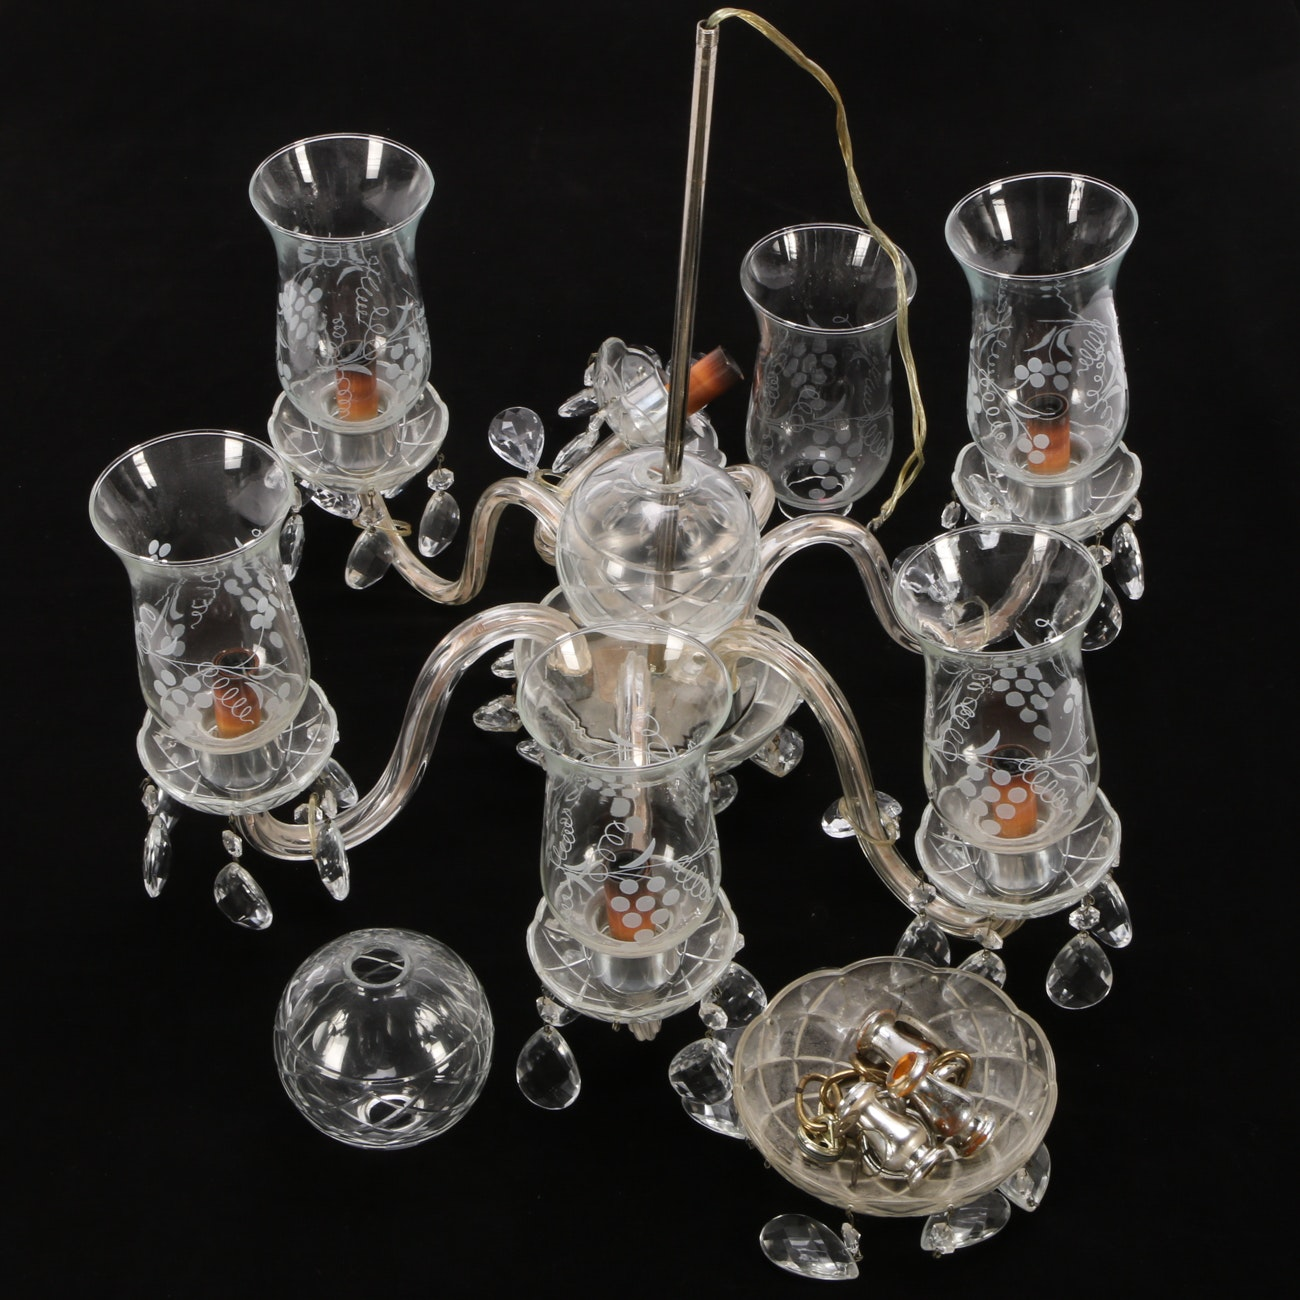 Vintage Six Arm Chandelier with Cut Glass Prisms and Etched Glass Shades